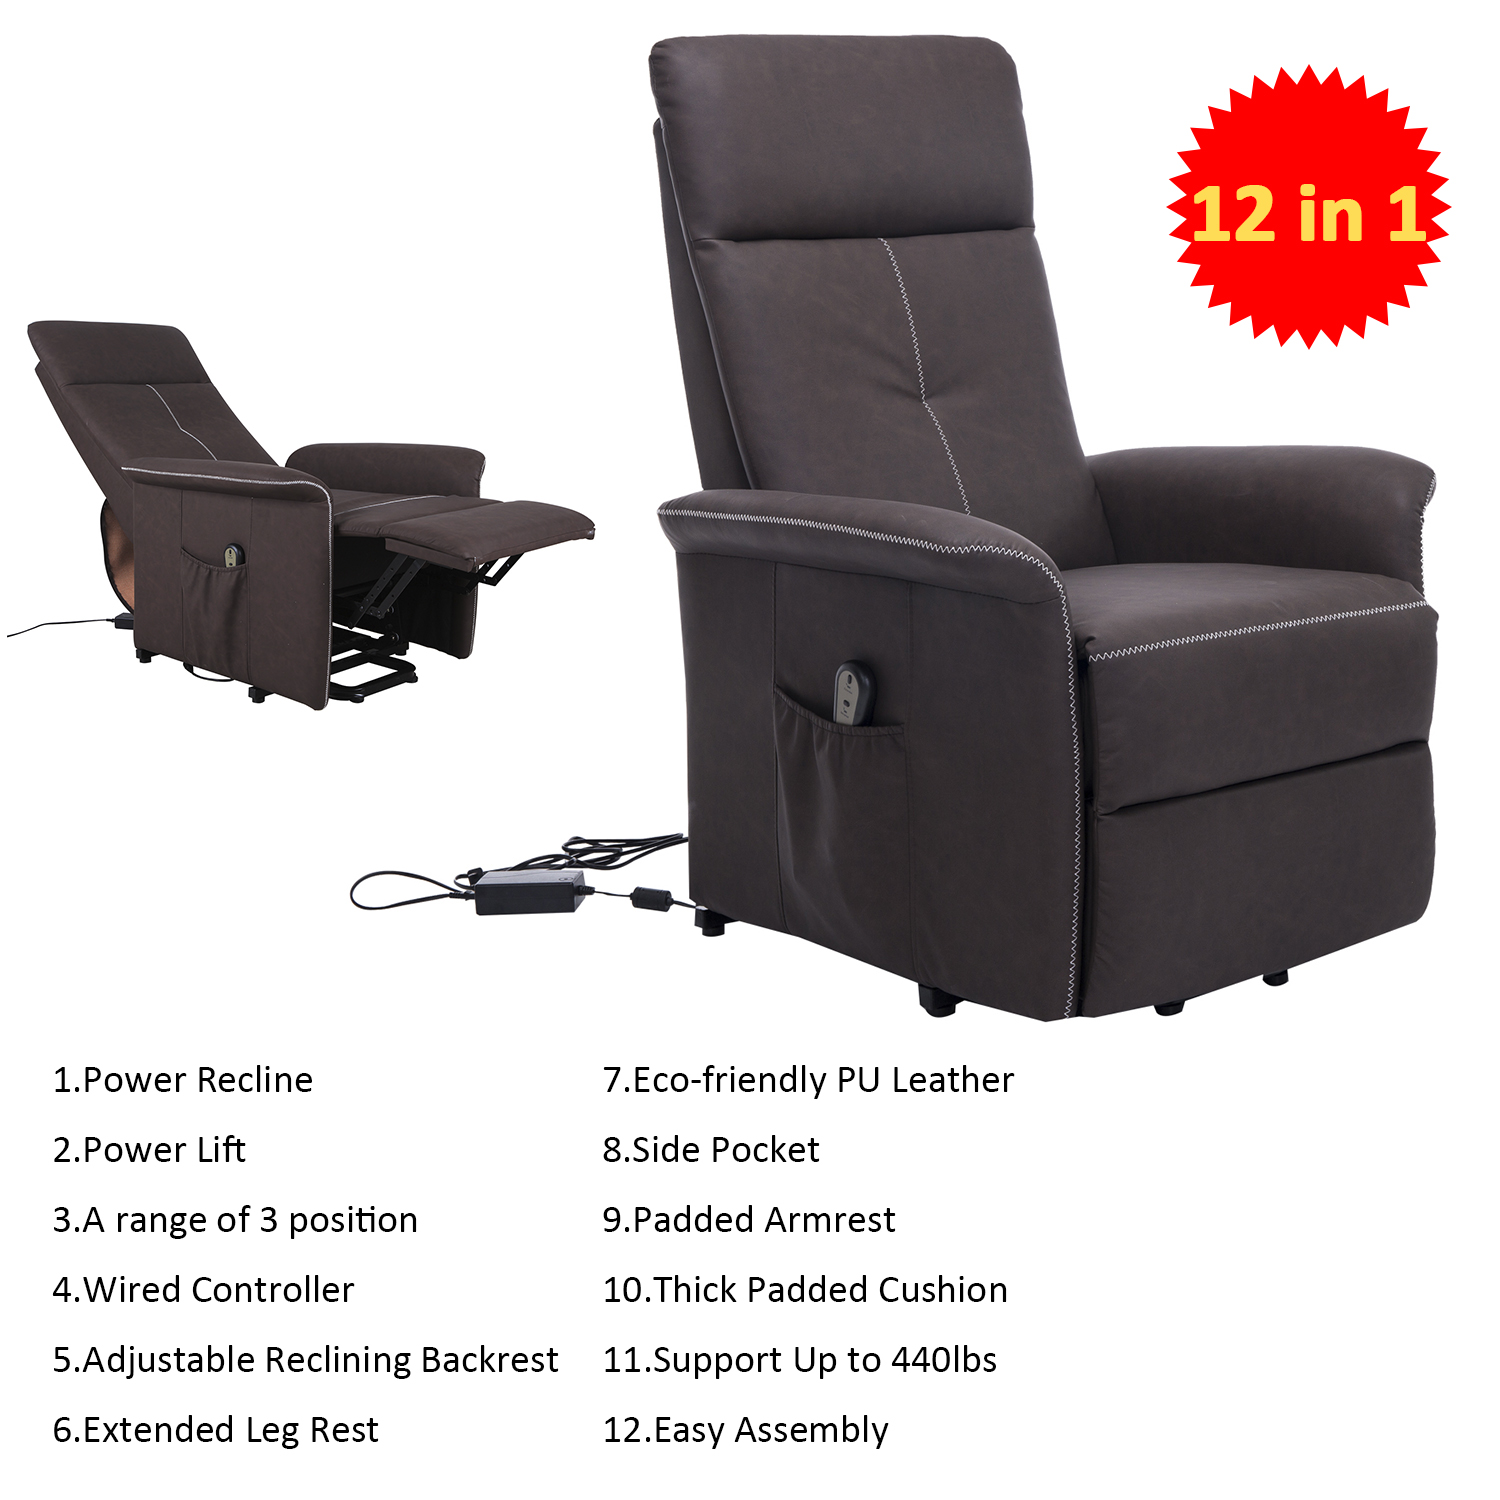 Hom PU Leather 3 Position Electric Lift Chair and Recliner with